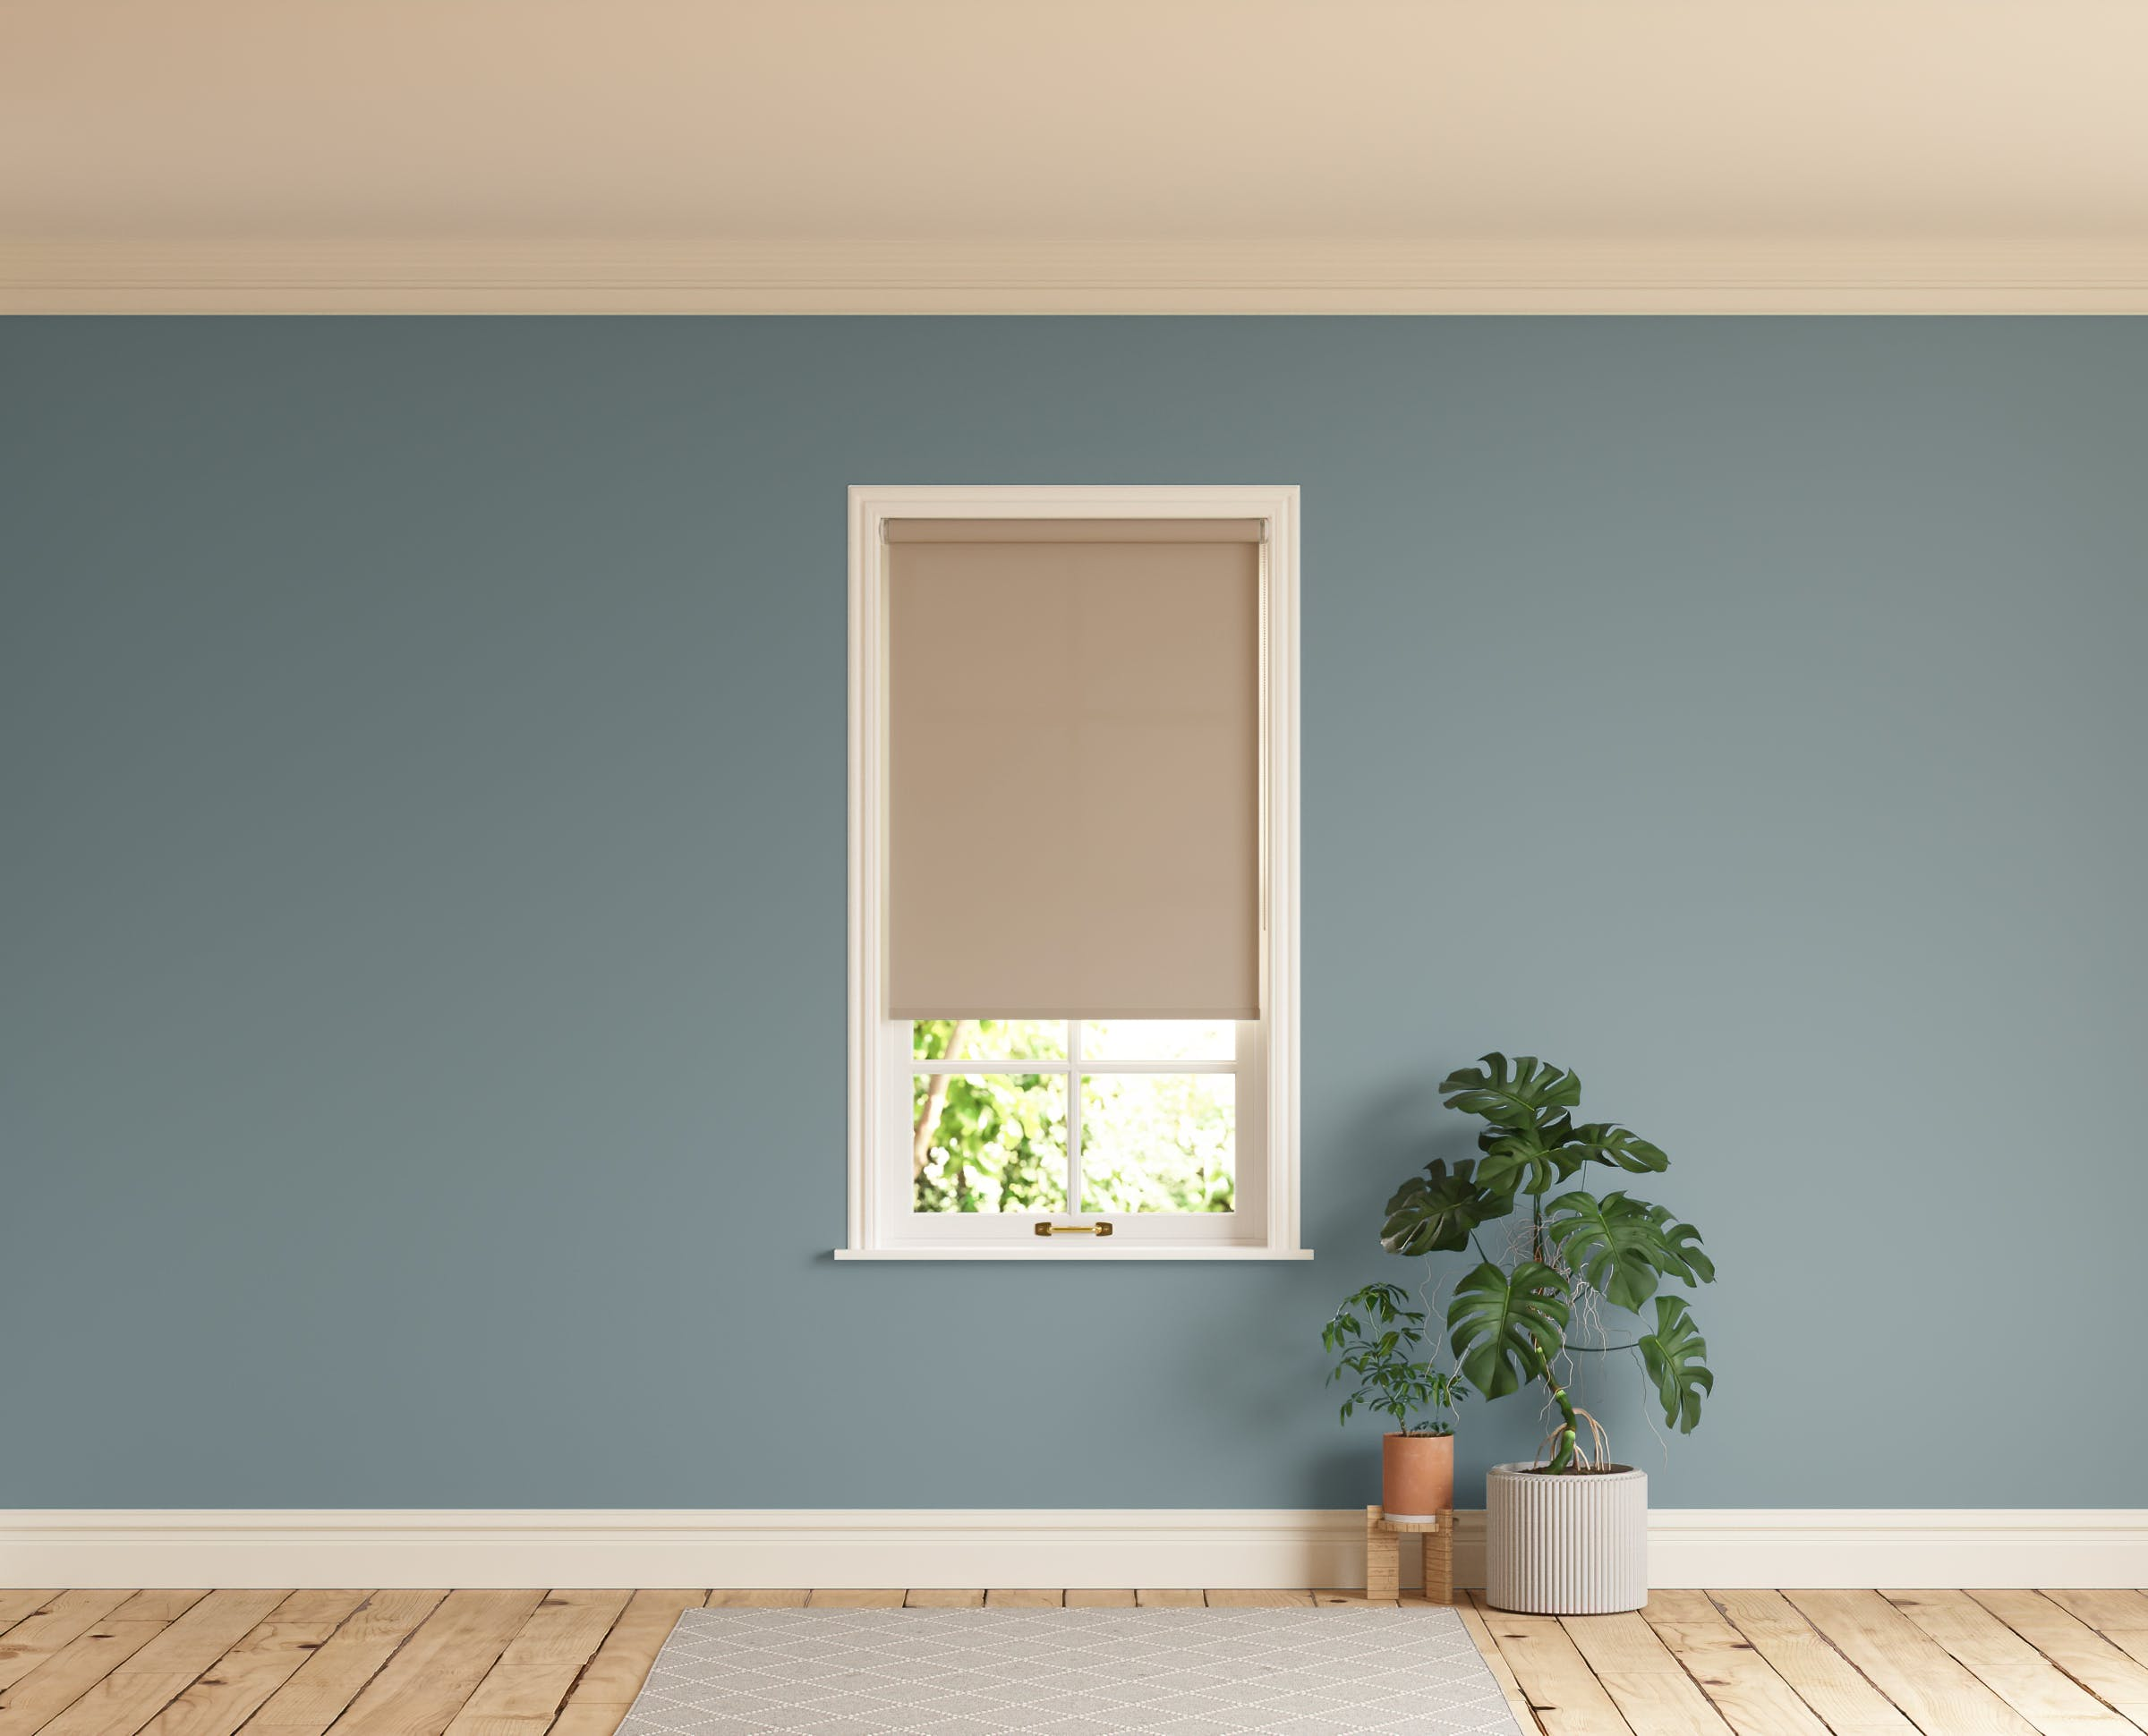 Room with walls painted in Lick Teal 02 and Beige 02 roller blinds